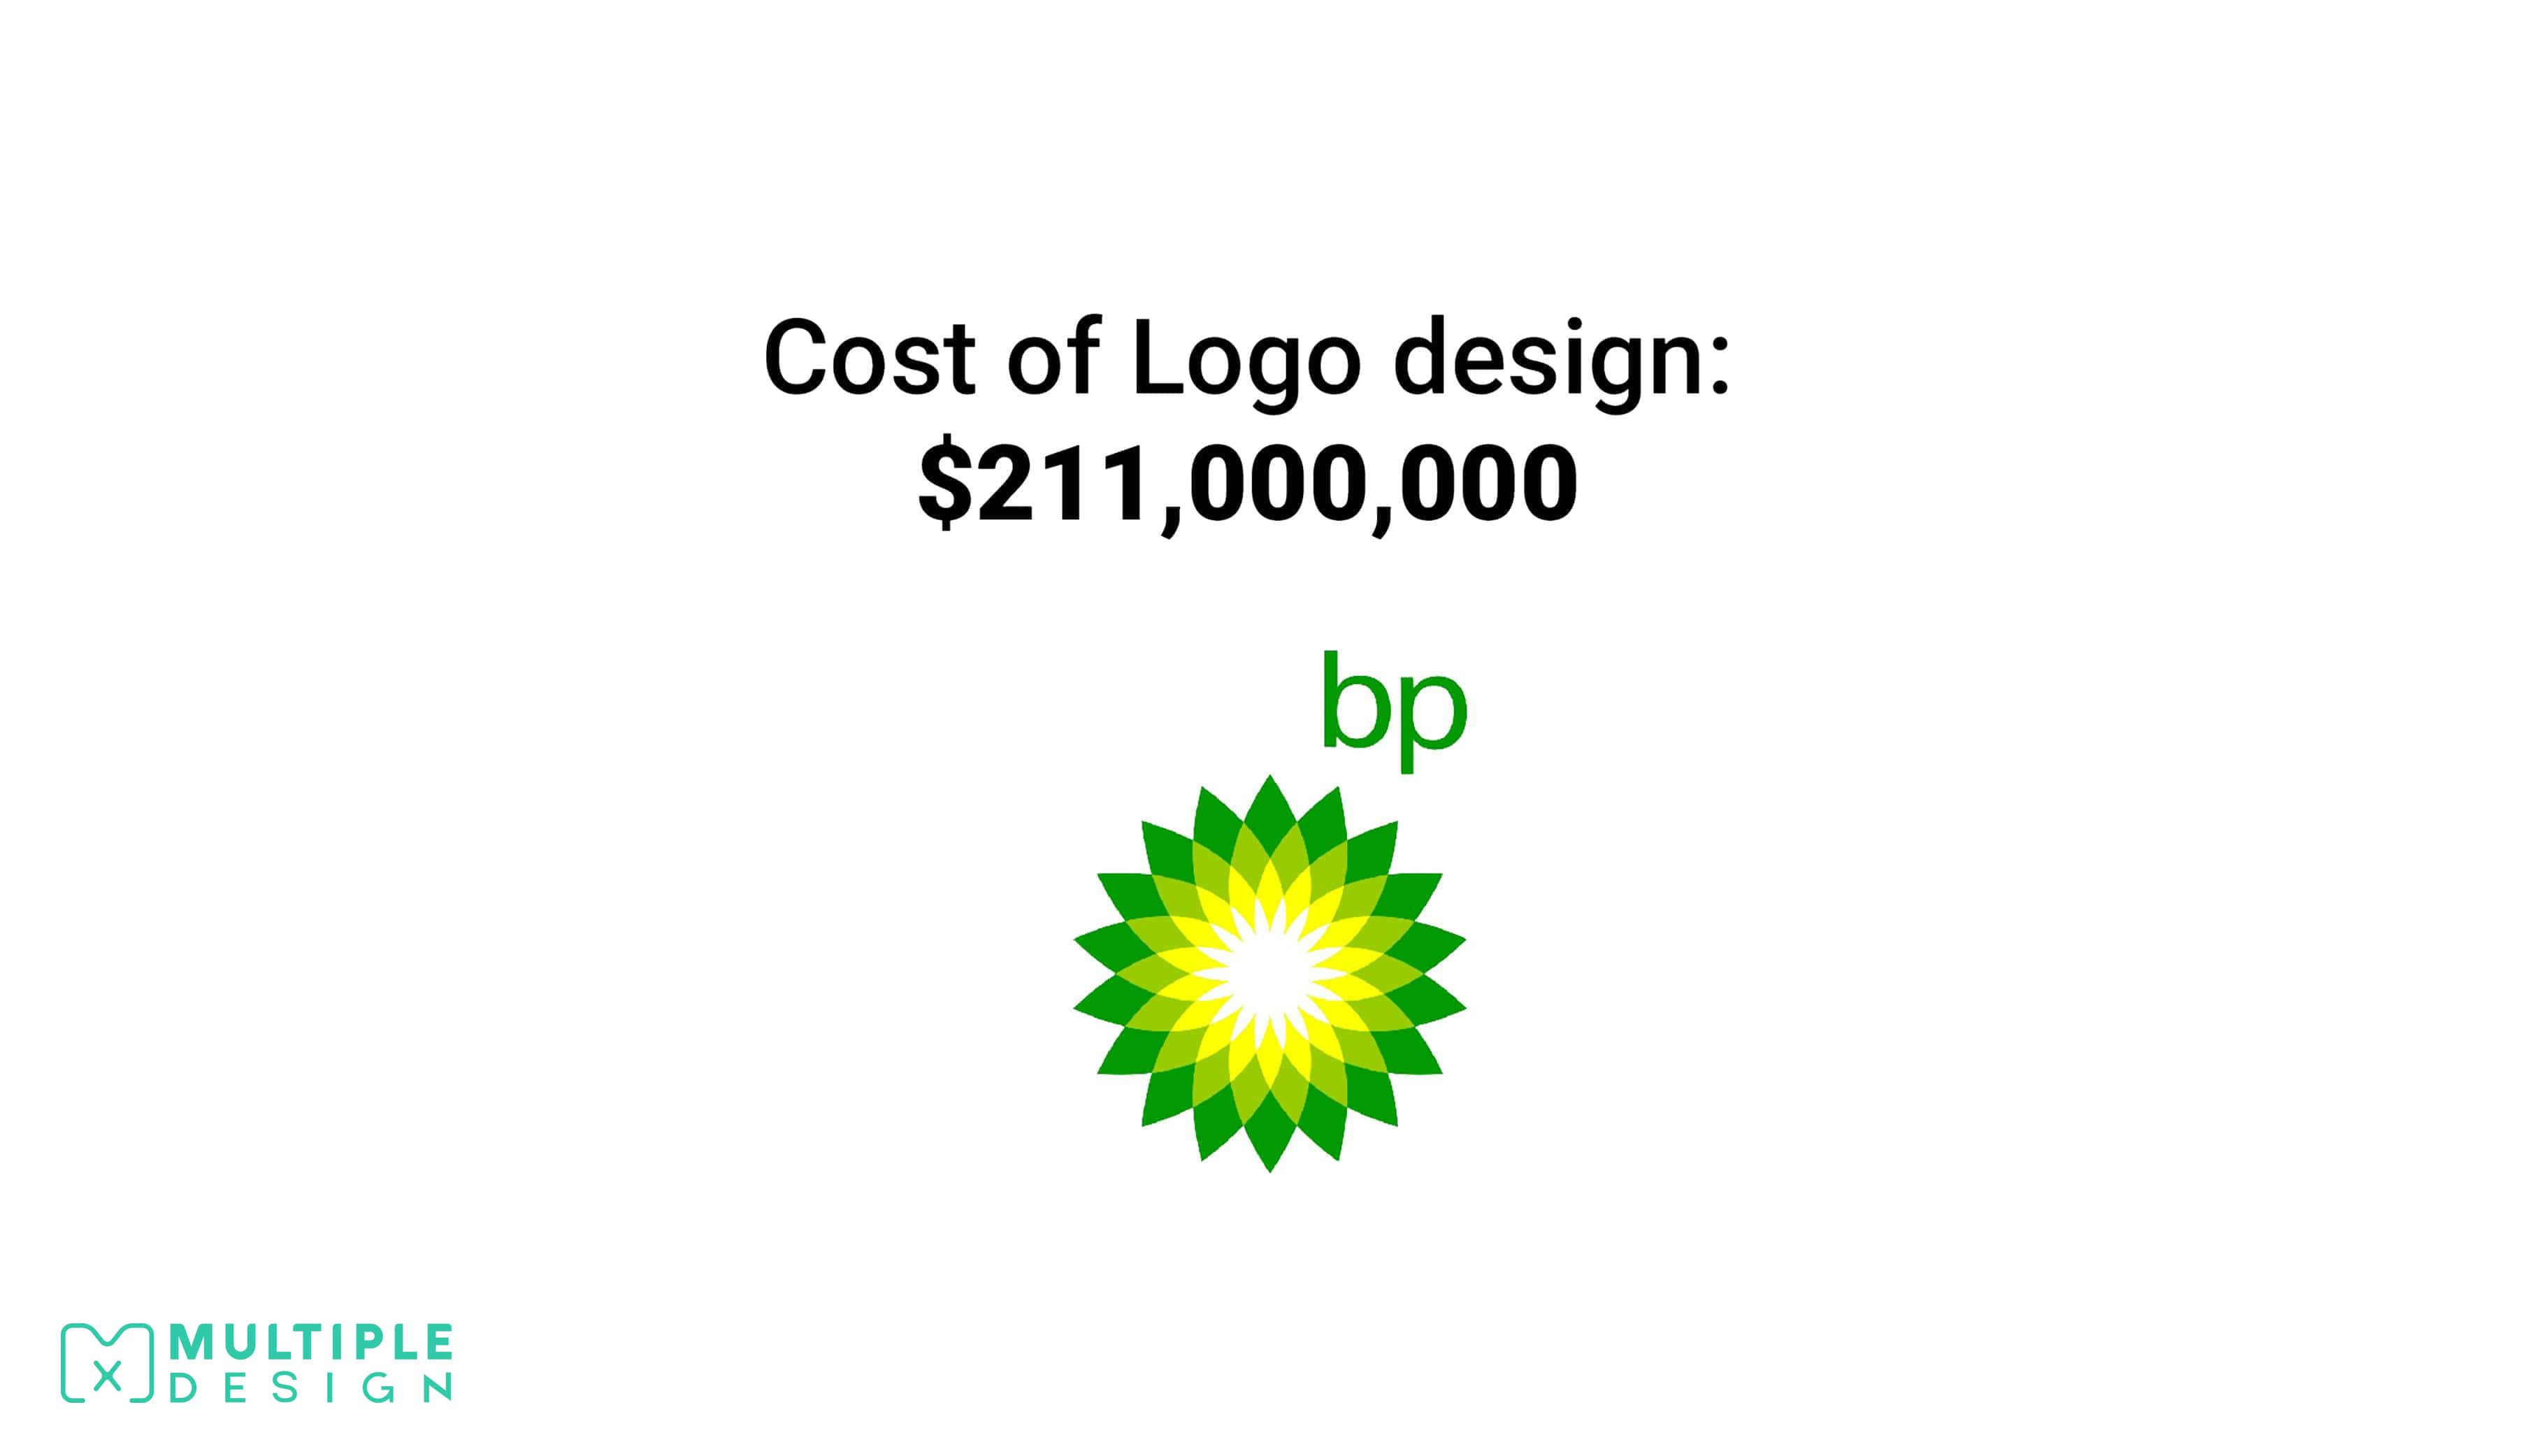 bp redesign $211,000,000 logo